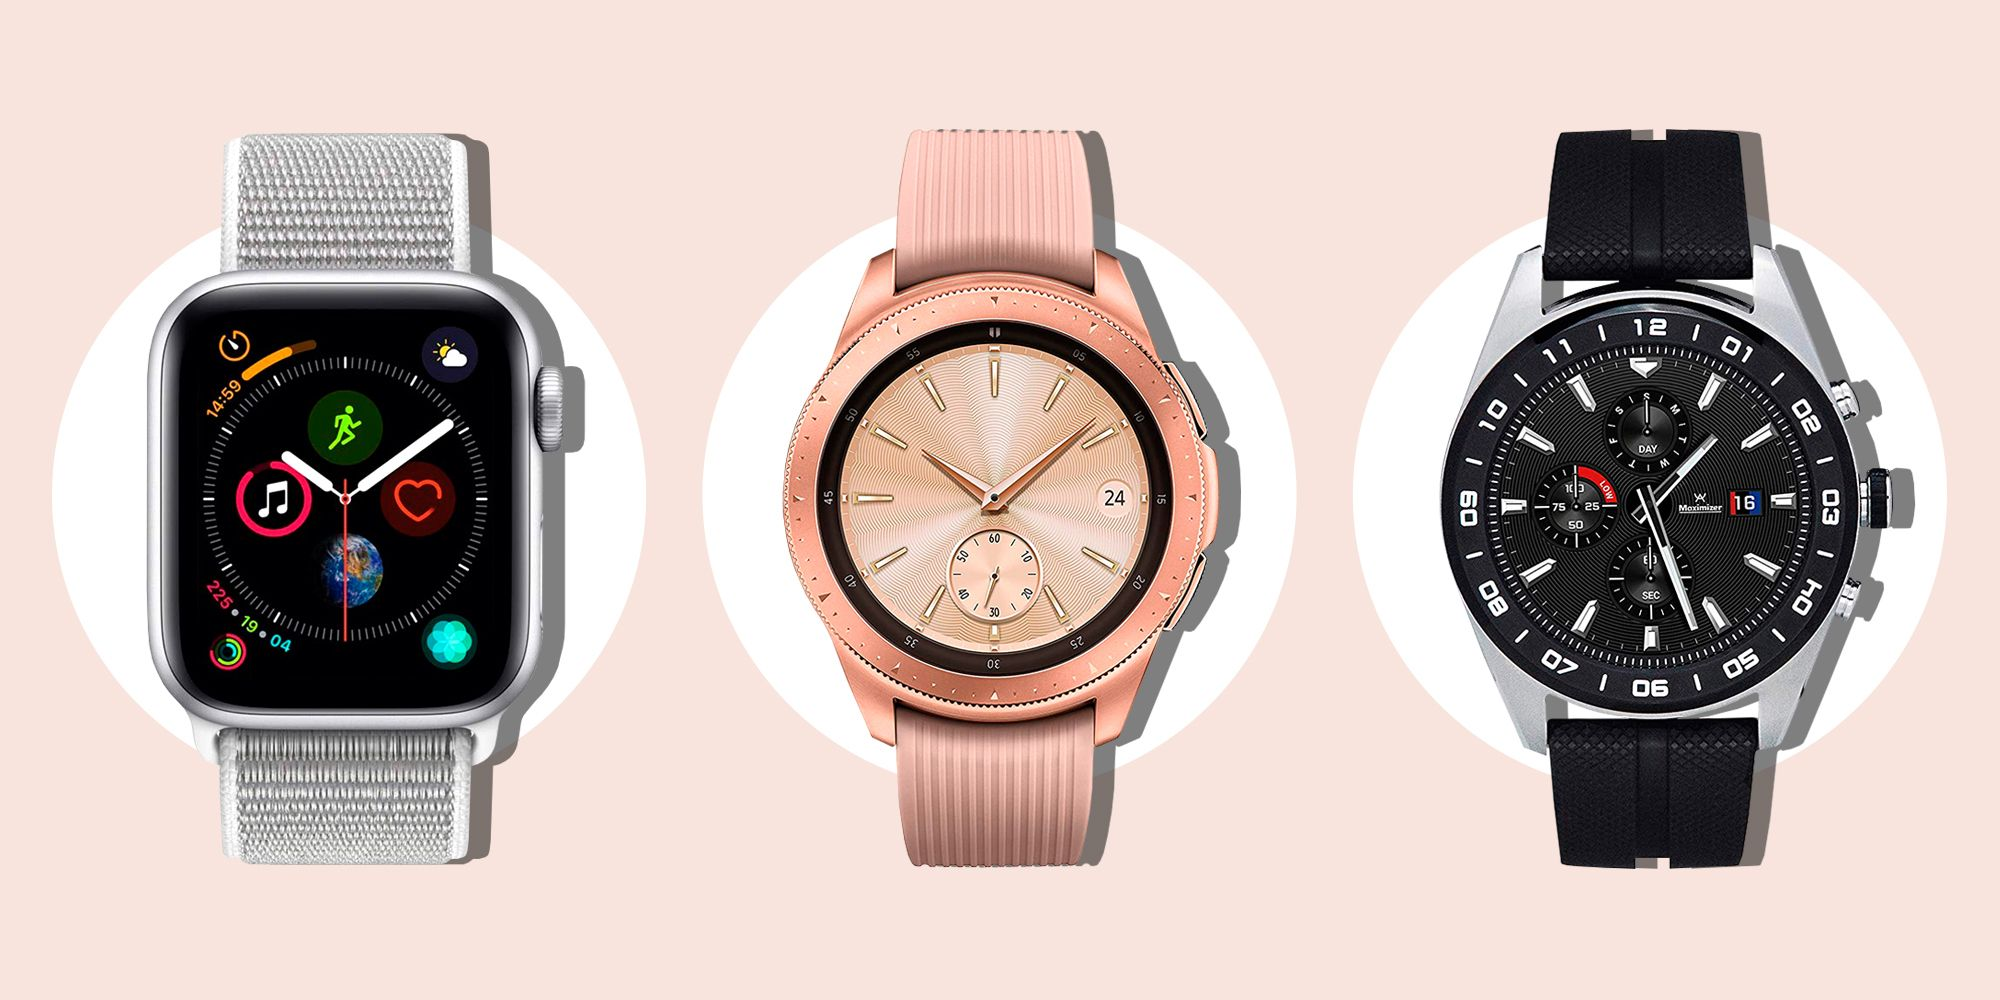 51daa8078d4b The 9 Best Smartwatches of 2018 - Top Smartwatches from Apple ...